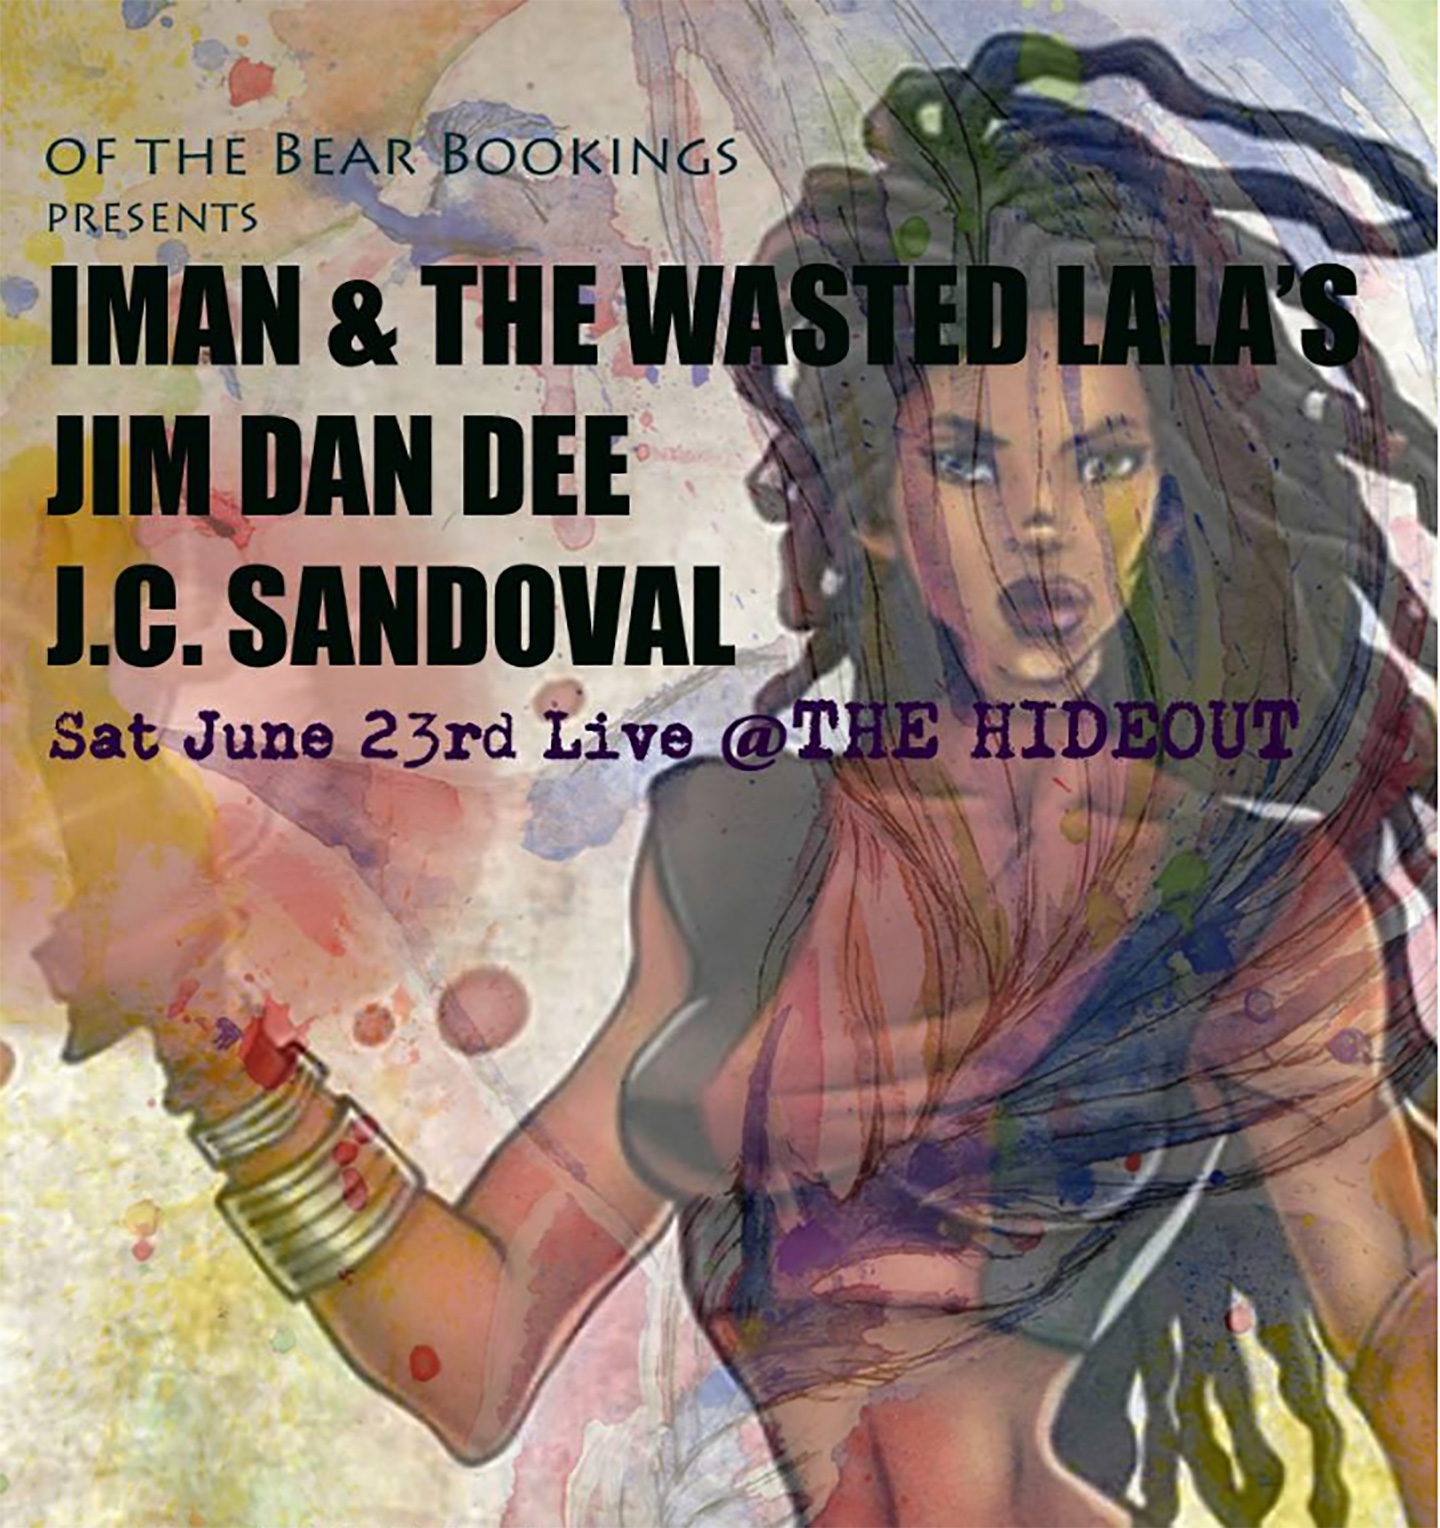 Join us for a night of live music with bands Iman & the Wasted LaLa's and Jim Dan Dee, and musician J.C. Sandoval at  The Hideout Toronto .  Doors 7pm (EARLY SHOW ENDS 10:30) Tickets $10 / Doors $15  Contact bands for advanced purchase:  Iman & the Wasted LaLa's  fans:  https://www.eventbrite.com/e/iman-the-wasted-lalas-live-the-hideout-tickets-46765280212?aff=affiliate1    Jim Dan Dee  fans:  https://www.eventbrite.ca/e/jim-dan-dee-new-album-preview-w-iman-and-the-wasted-lalas-tickets-46773682343    J.C. Sandoval  - Front-man of  The Crooked  will be playing acoustically for your enjoyment